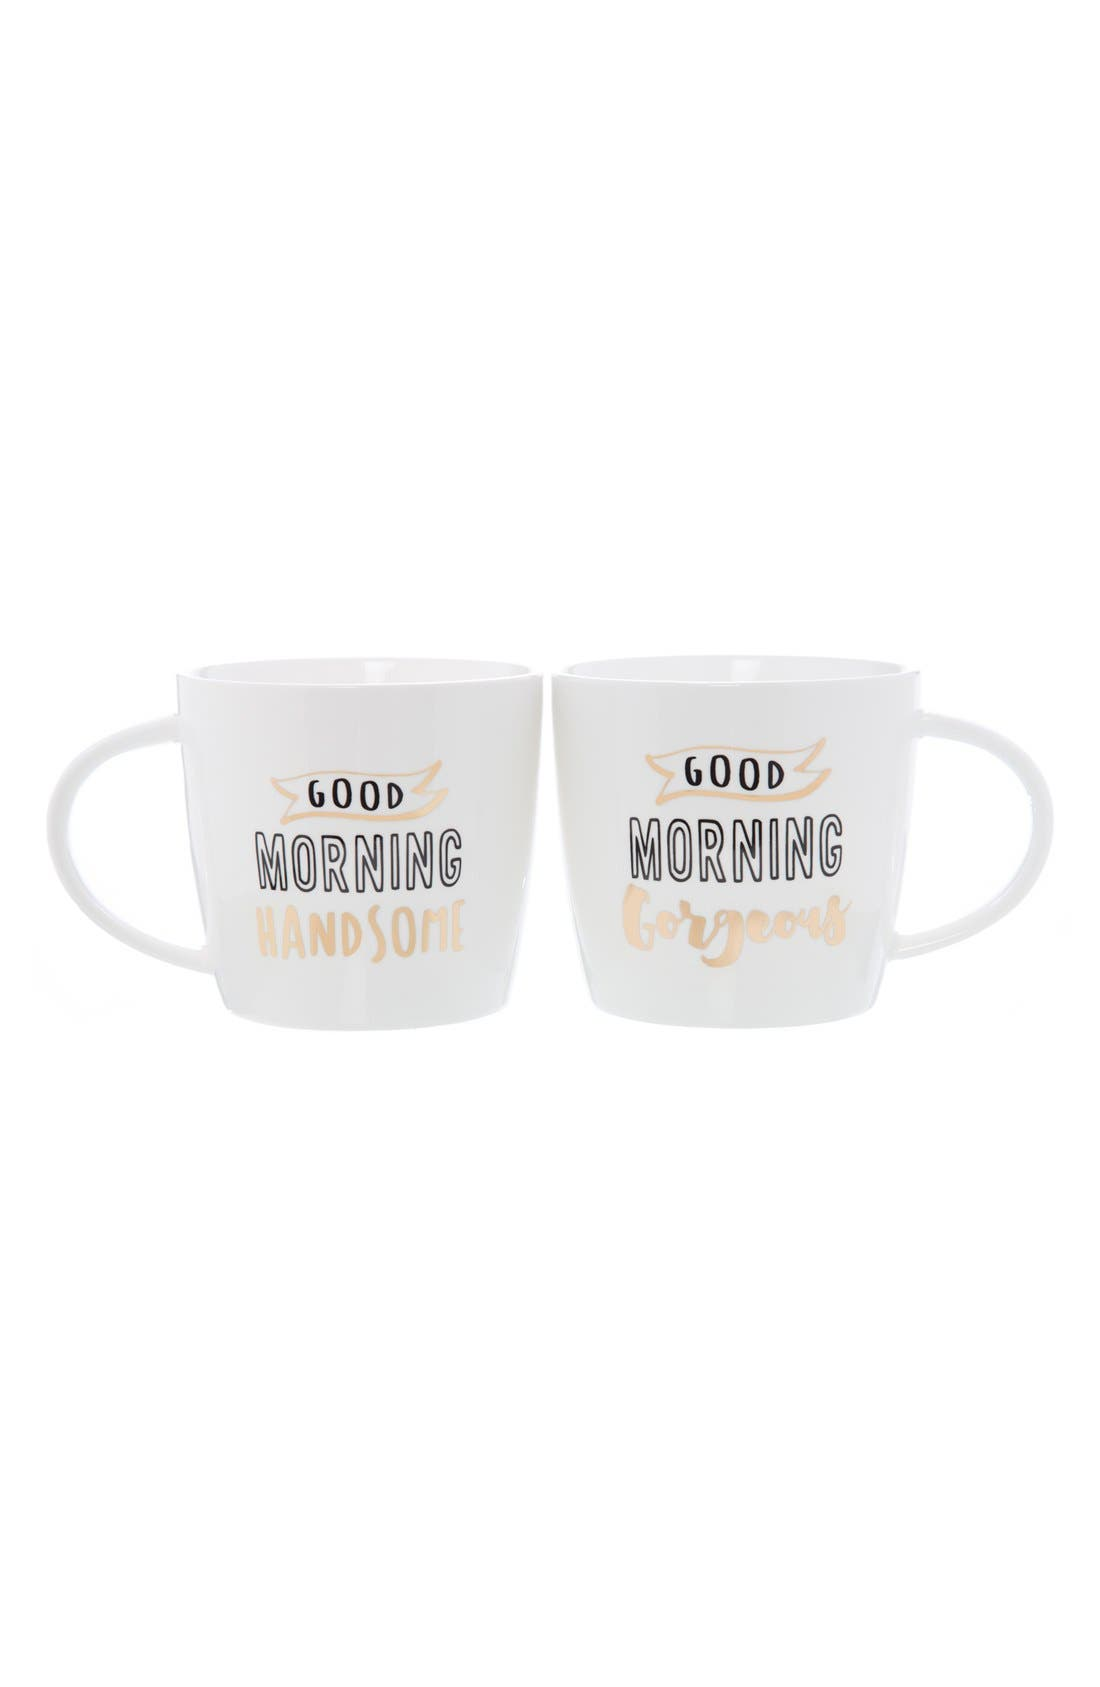 'Good Morning' Ceramic Coffee Mugs,                             Main thumbnail 1, color,                             100